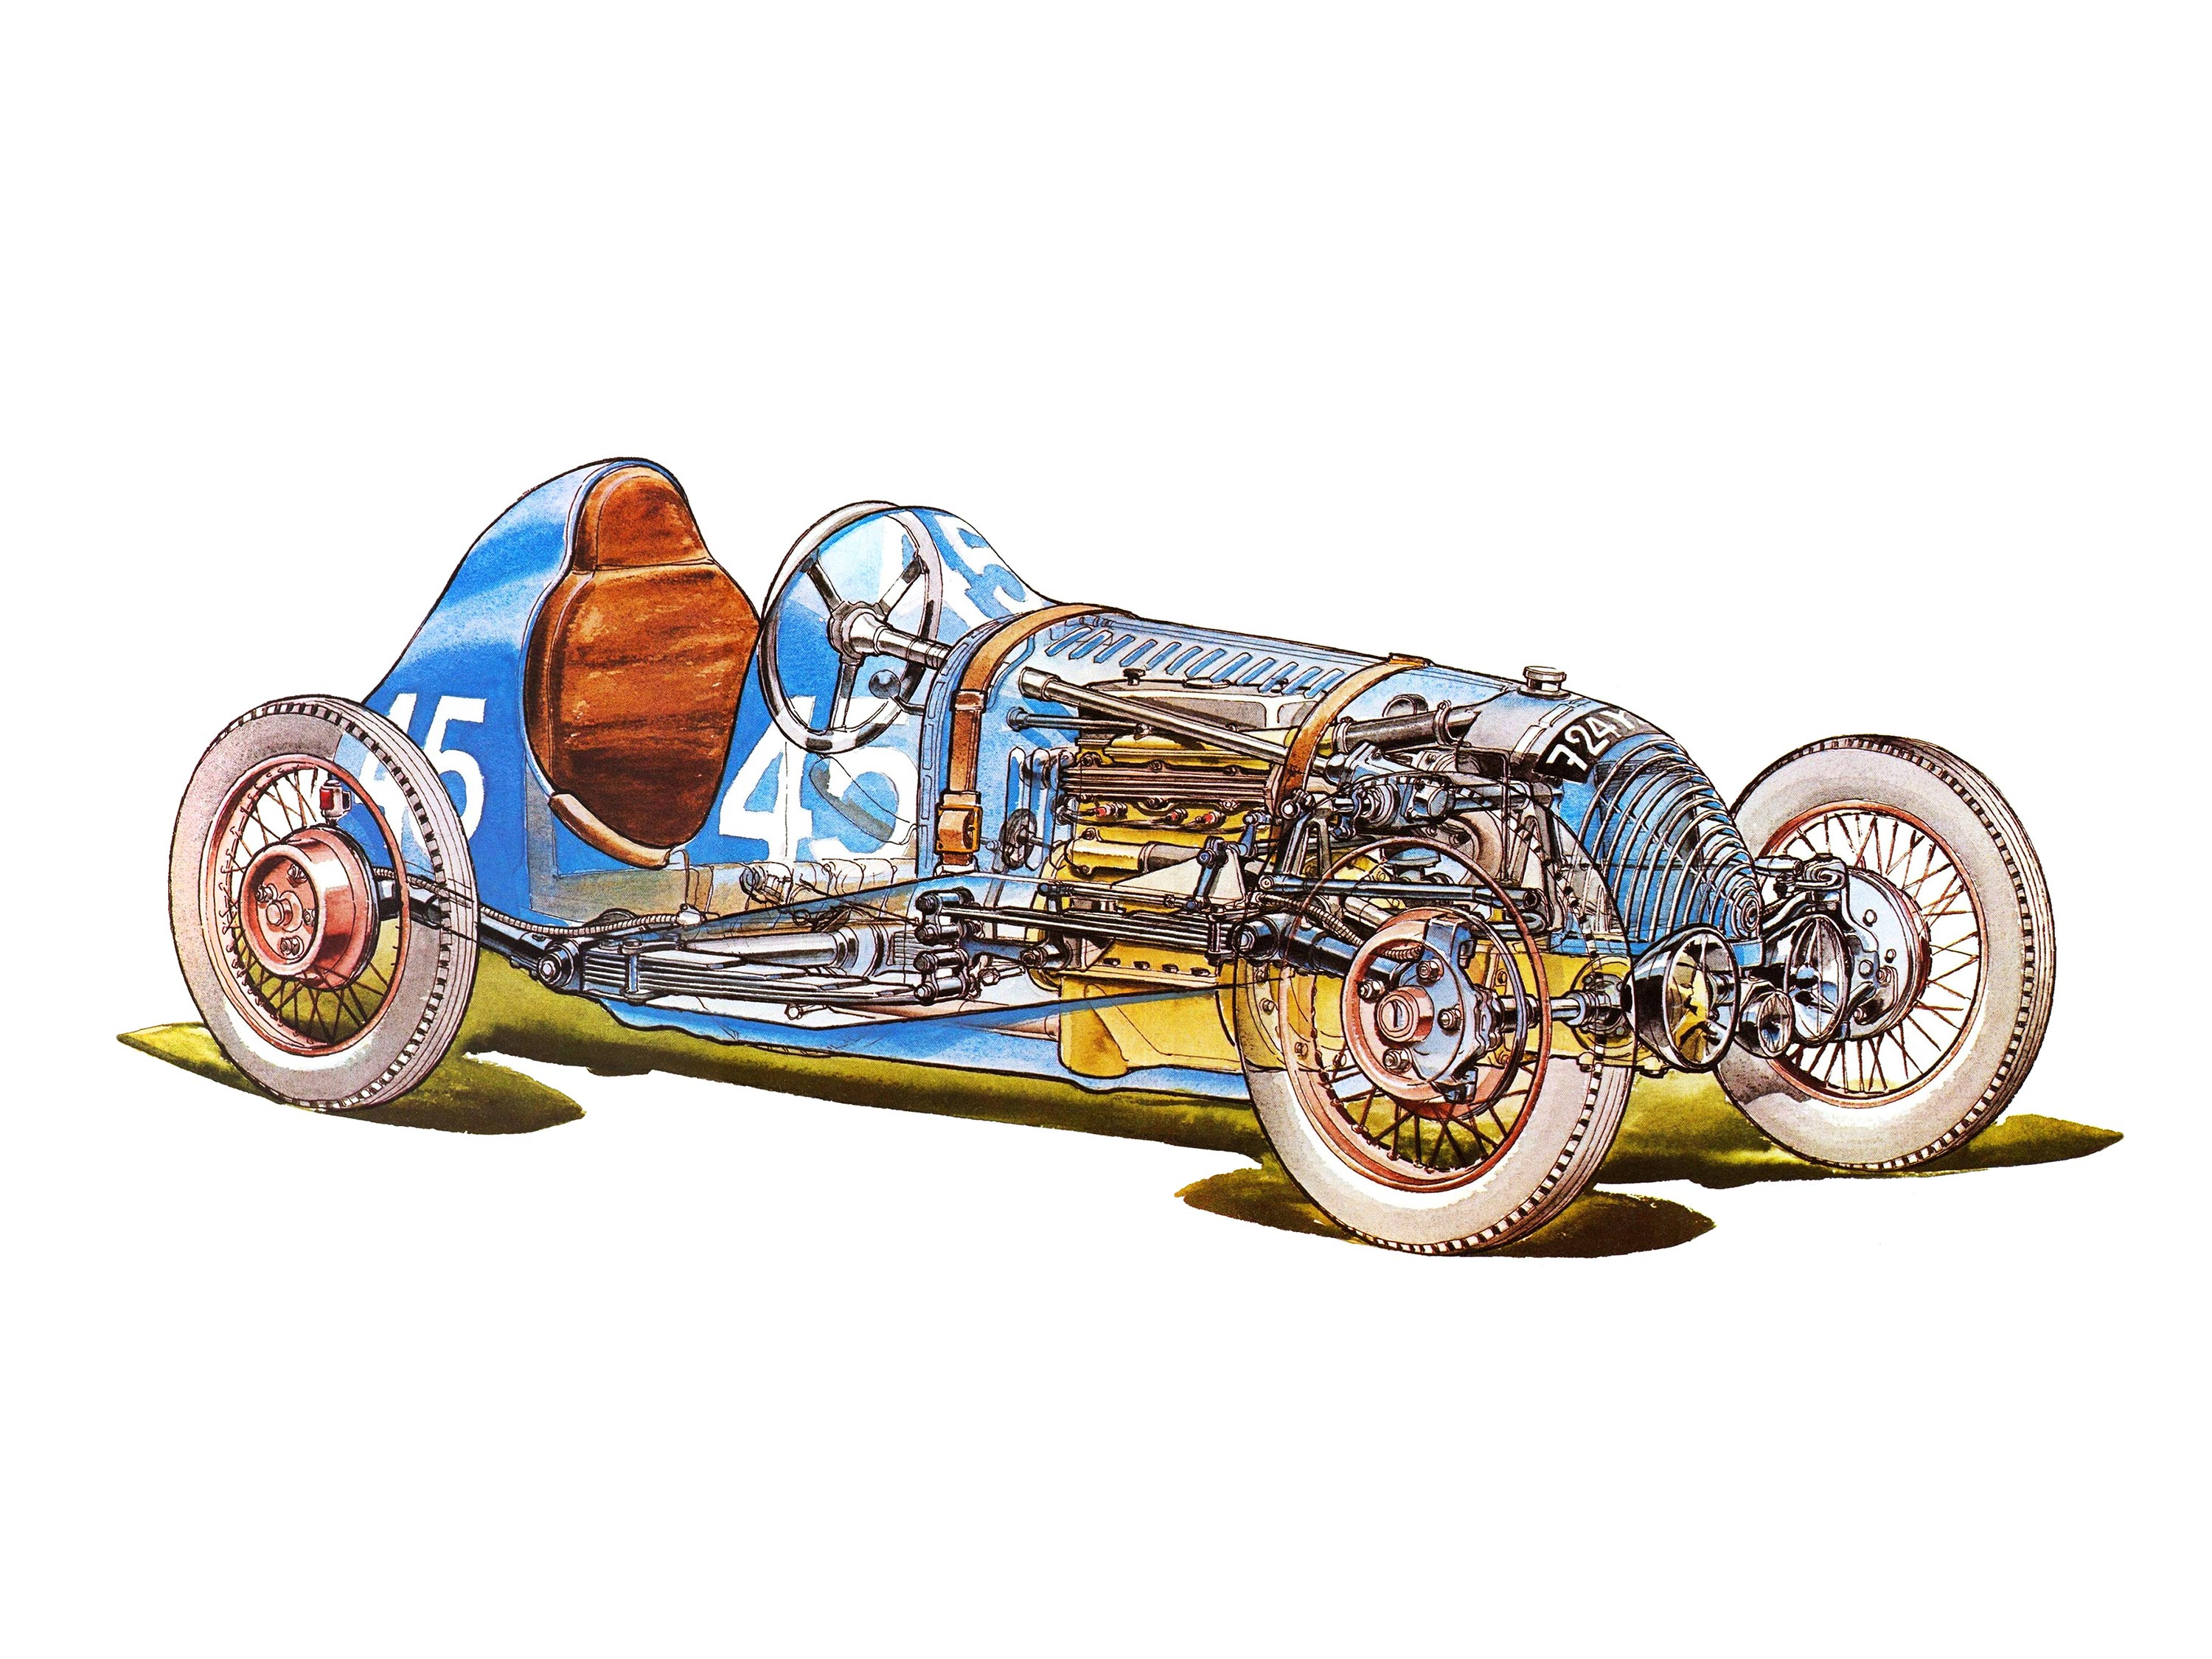 Chevallier 1100 cutaway drawing